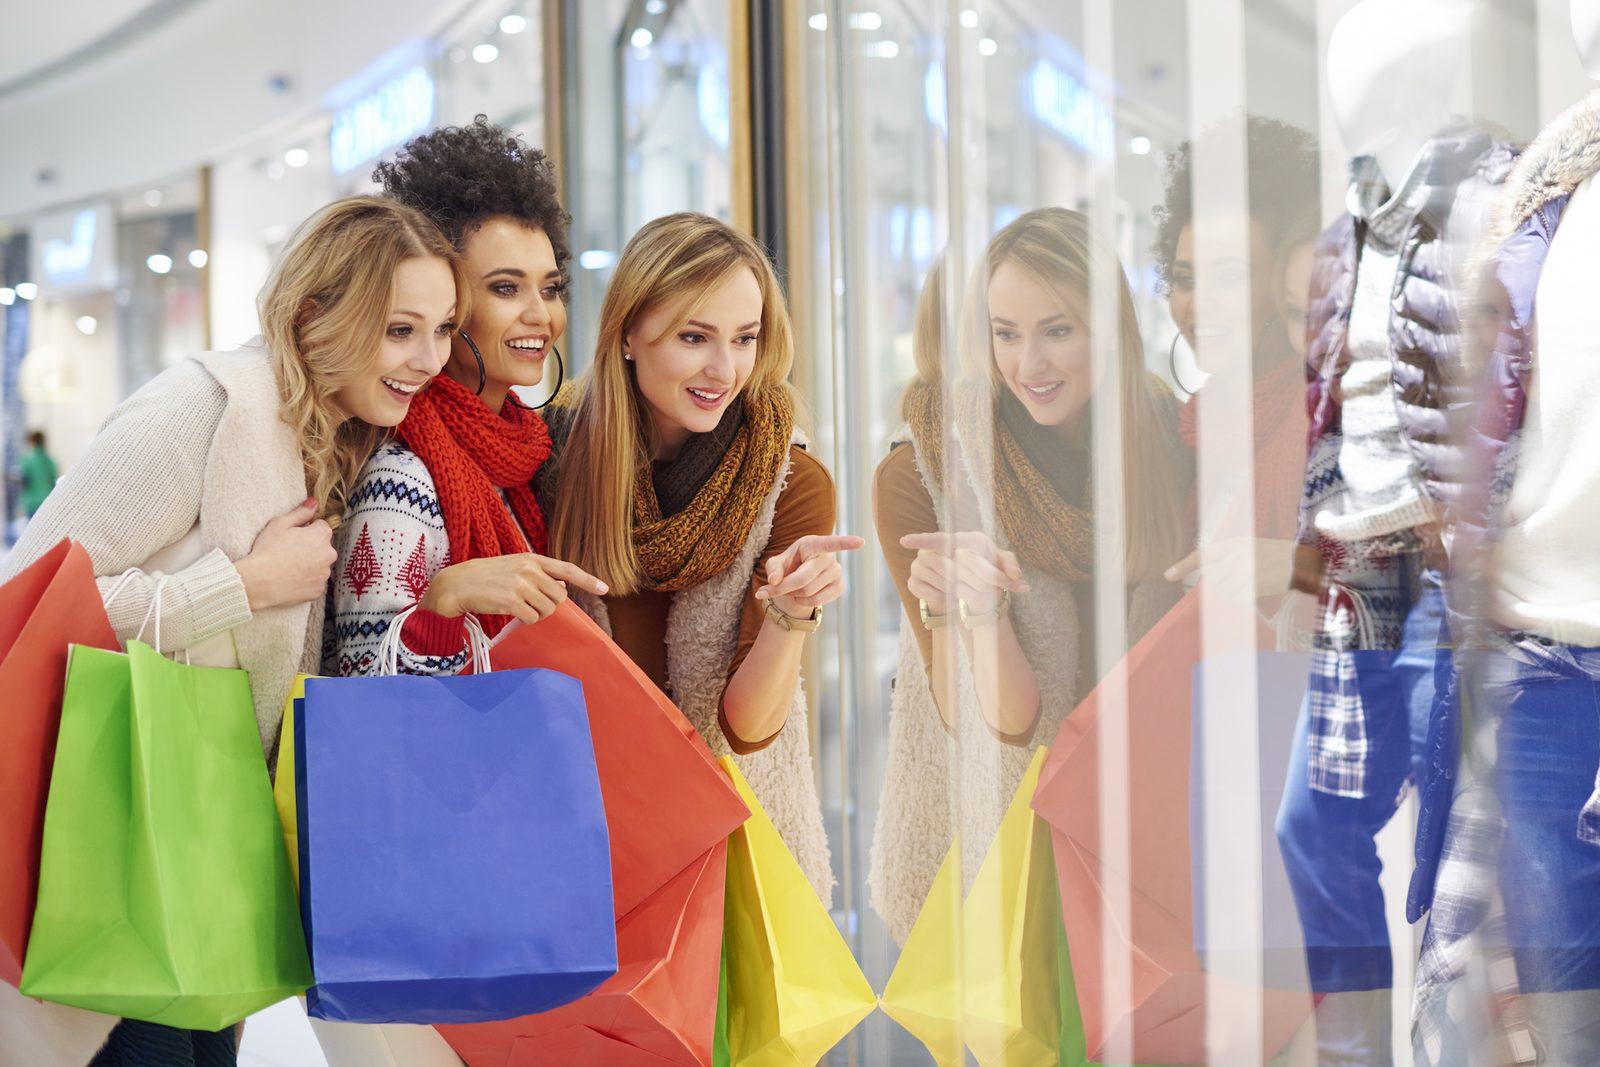 How to Make the Most of Your Outfits' Shopping Trips?